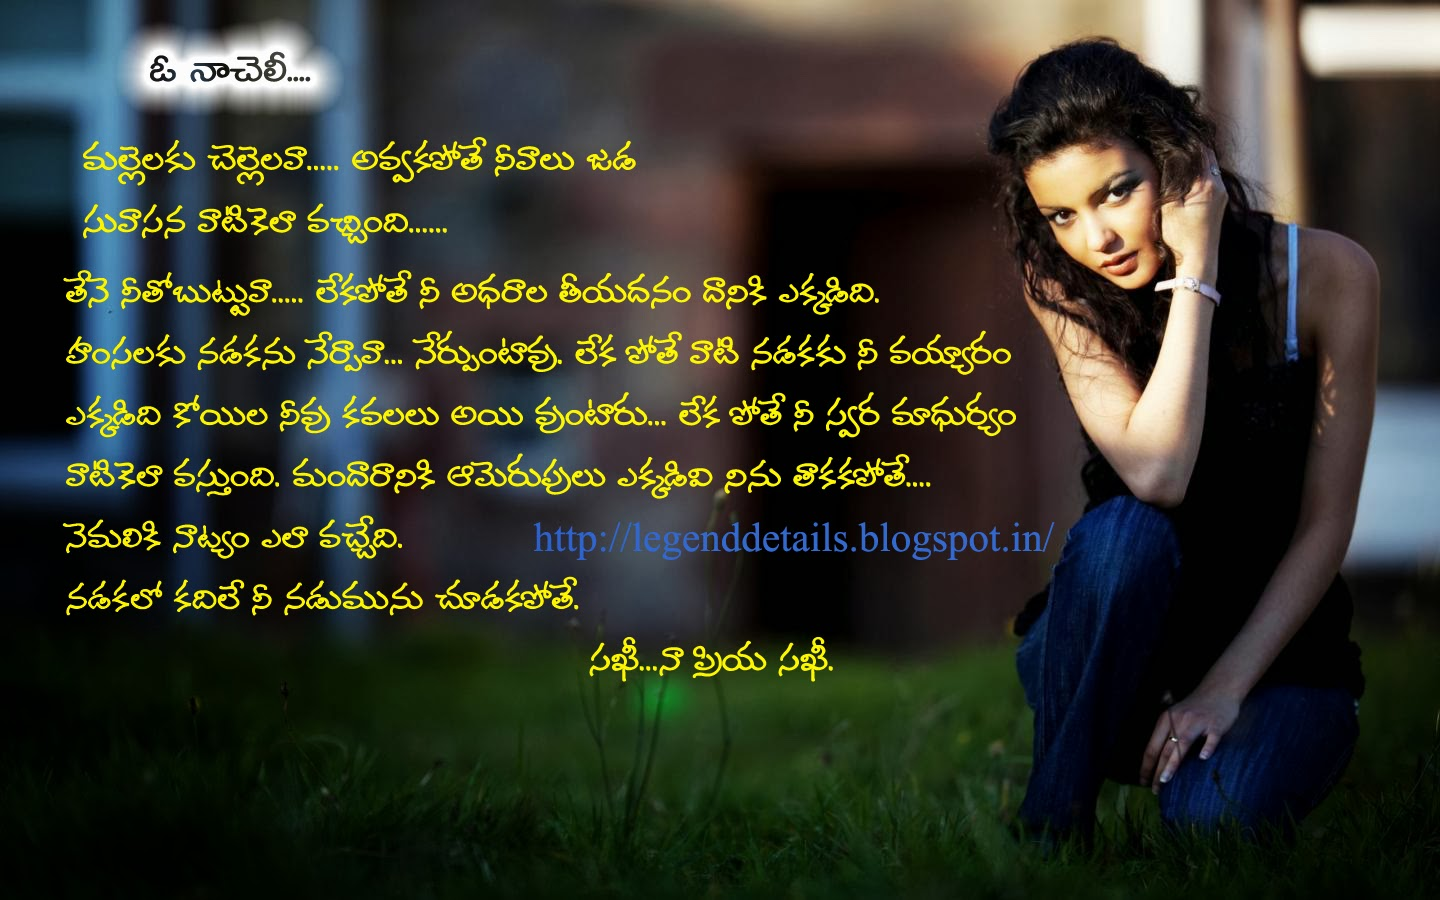 Best Love Quotes For Girlfriend In Telugu : for girlfriend love expressing poetry kavithalu in telugu heart ...